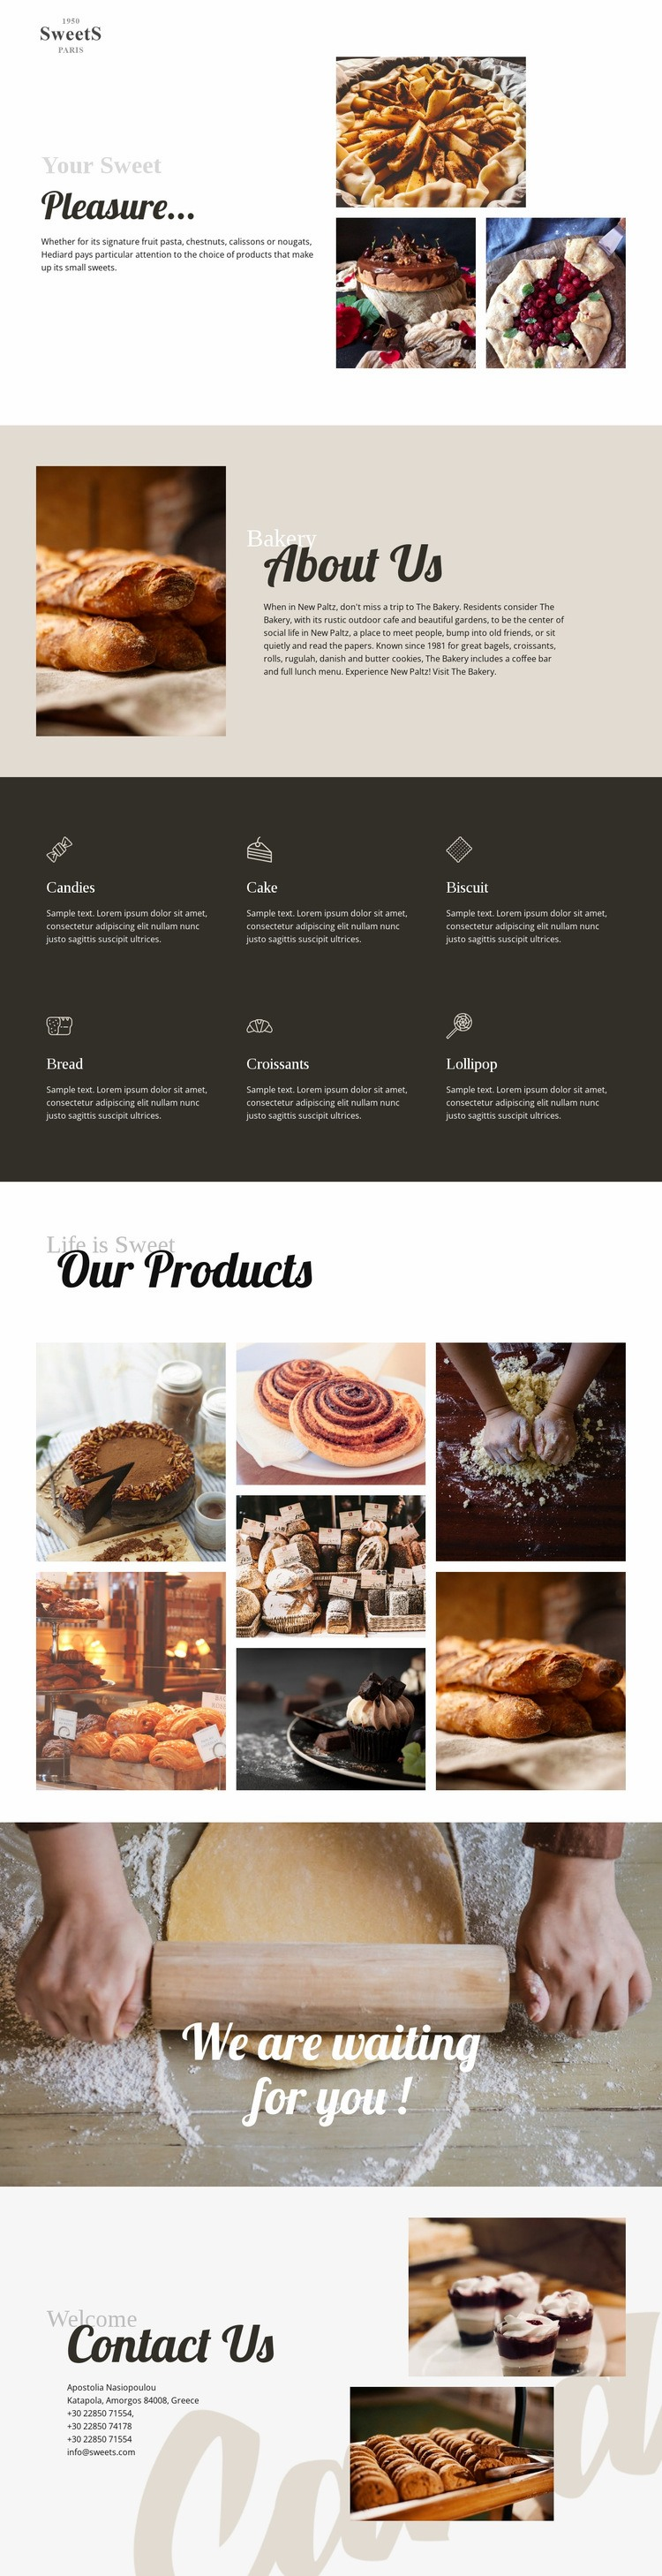 Cakes and baking food Html Code Example